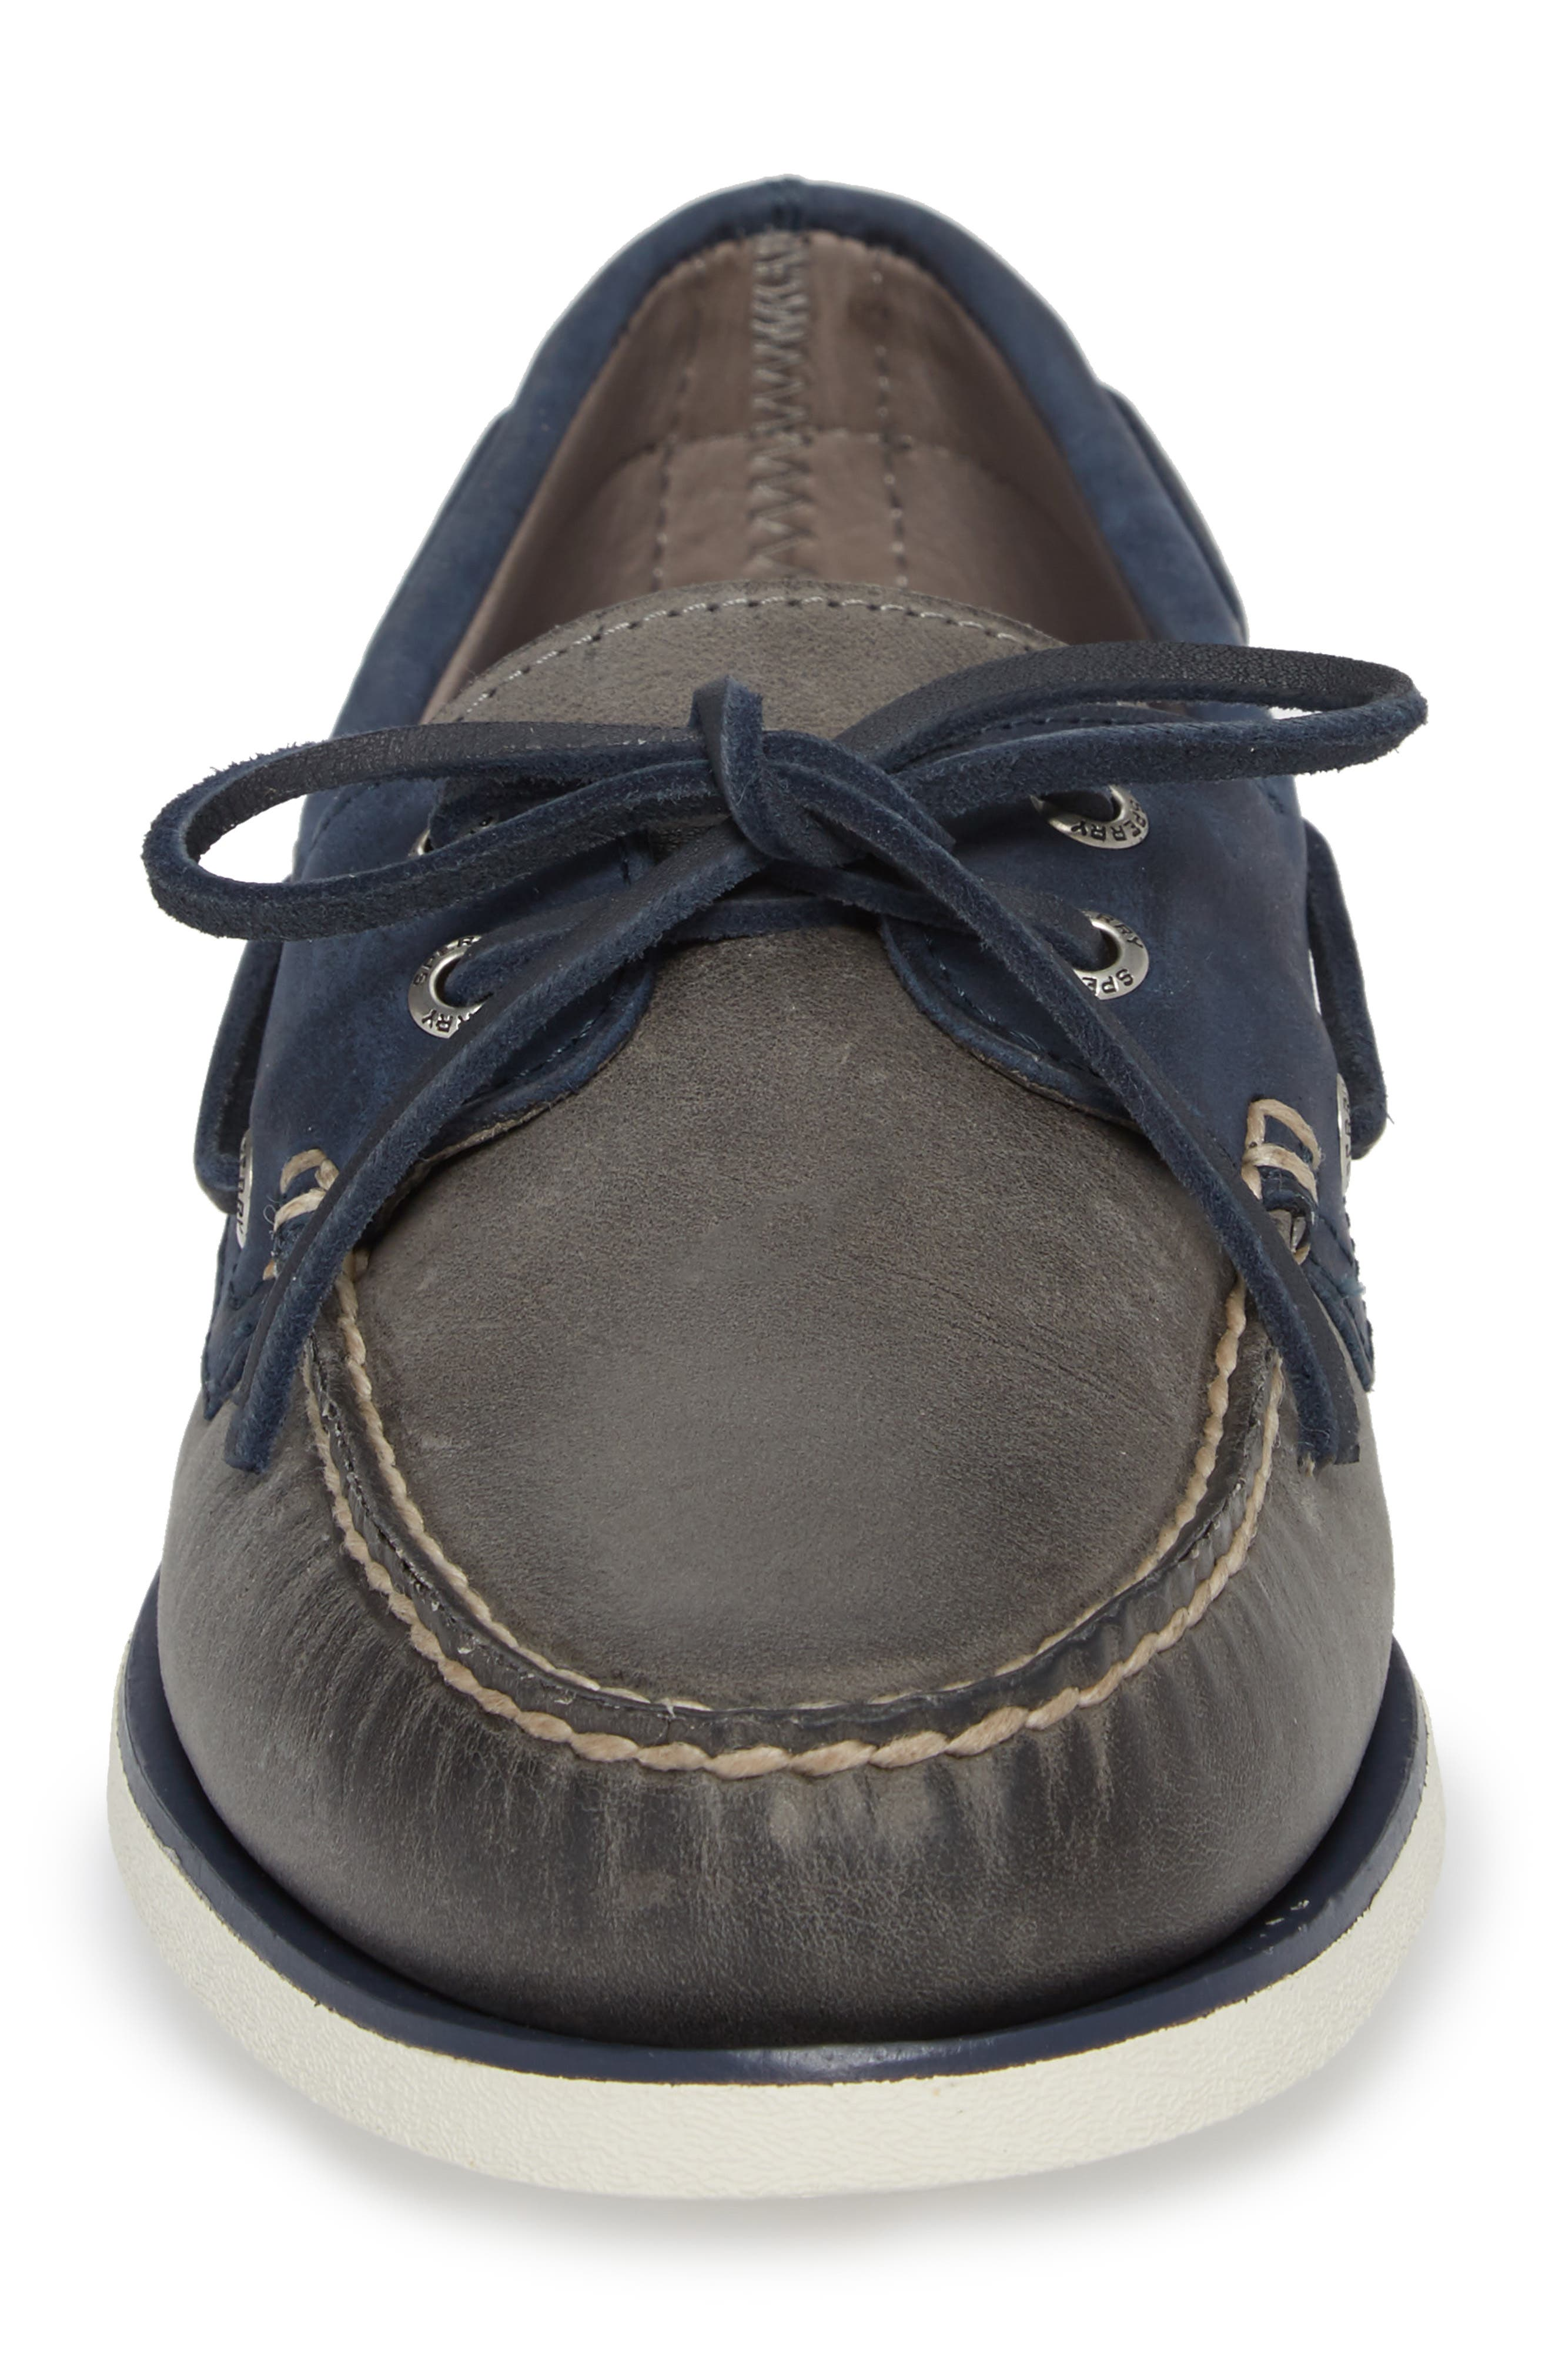 SPERRY, Gold Cup Authentic Original Boat Shoe, Alternate thumbnail 4, color, GREY/ NAVY LEATHER